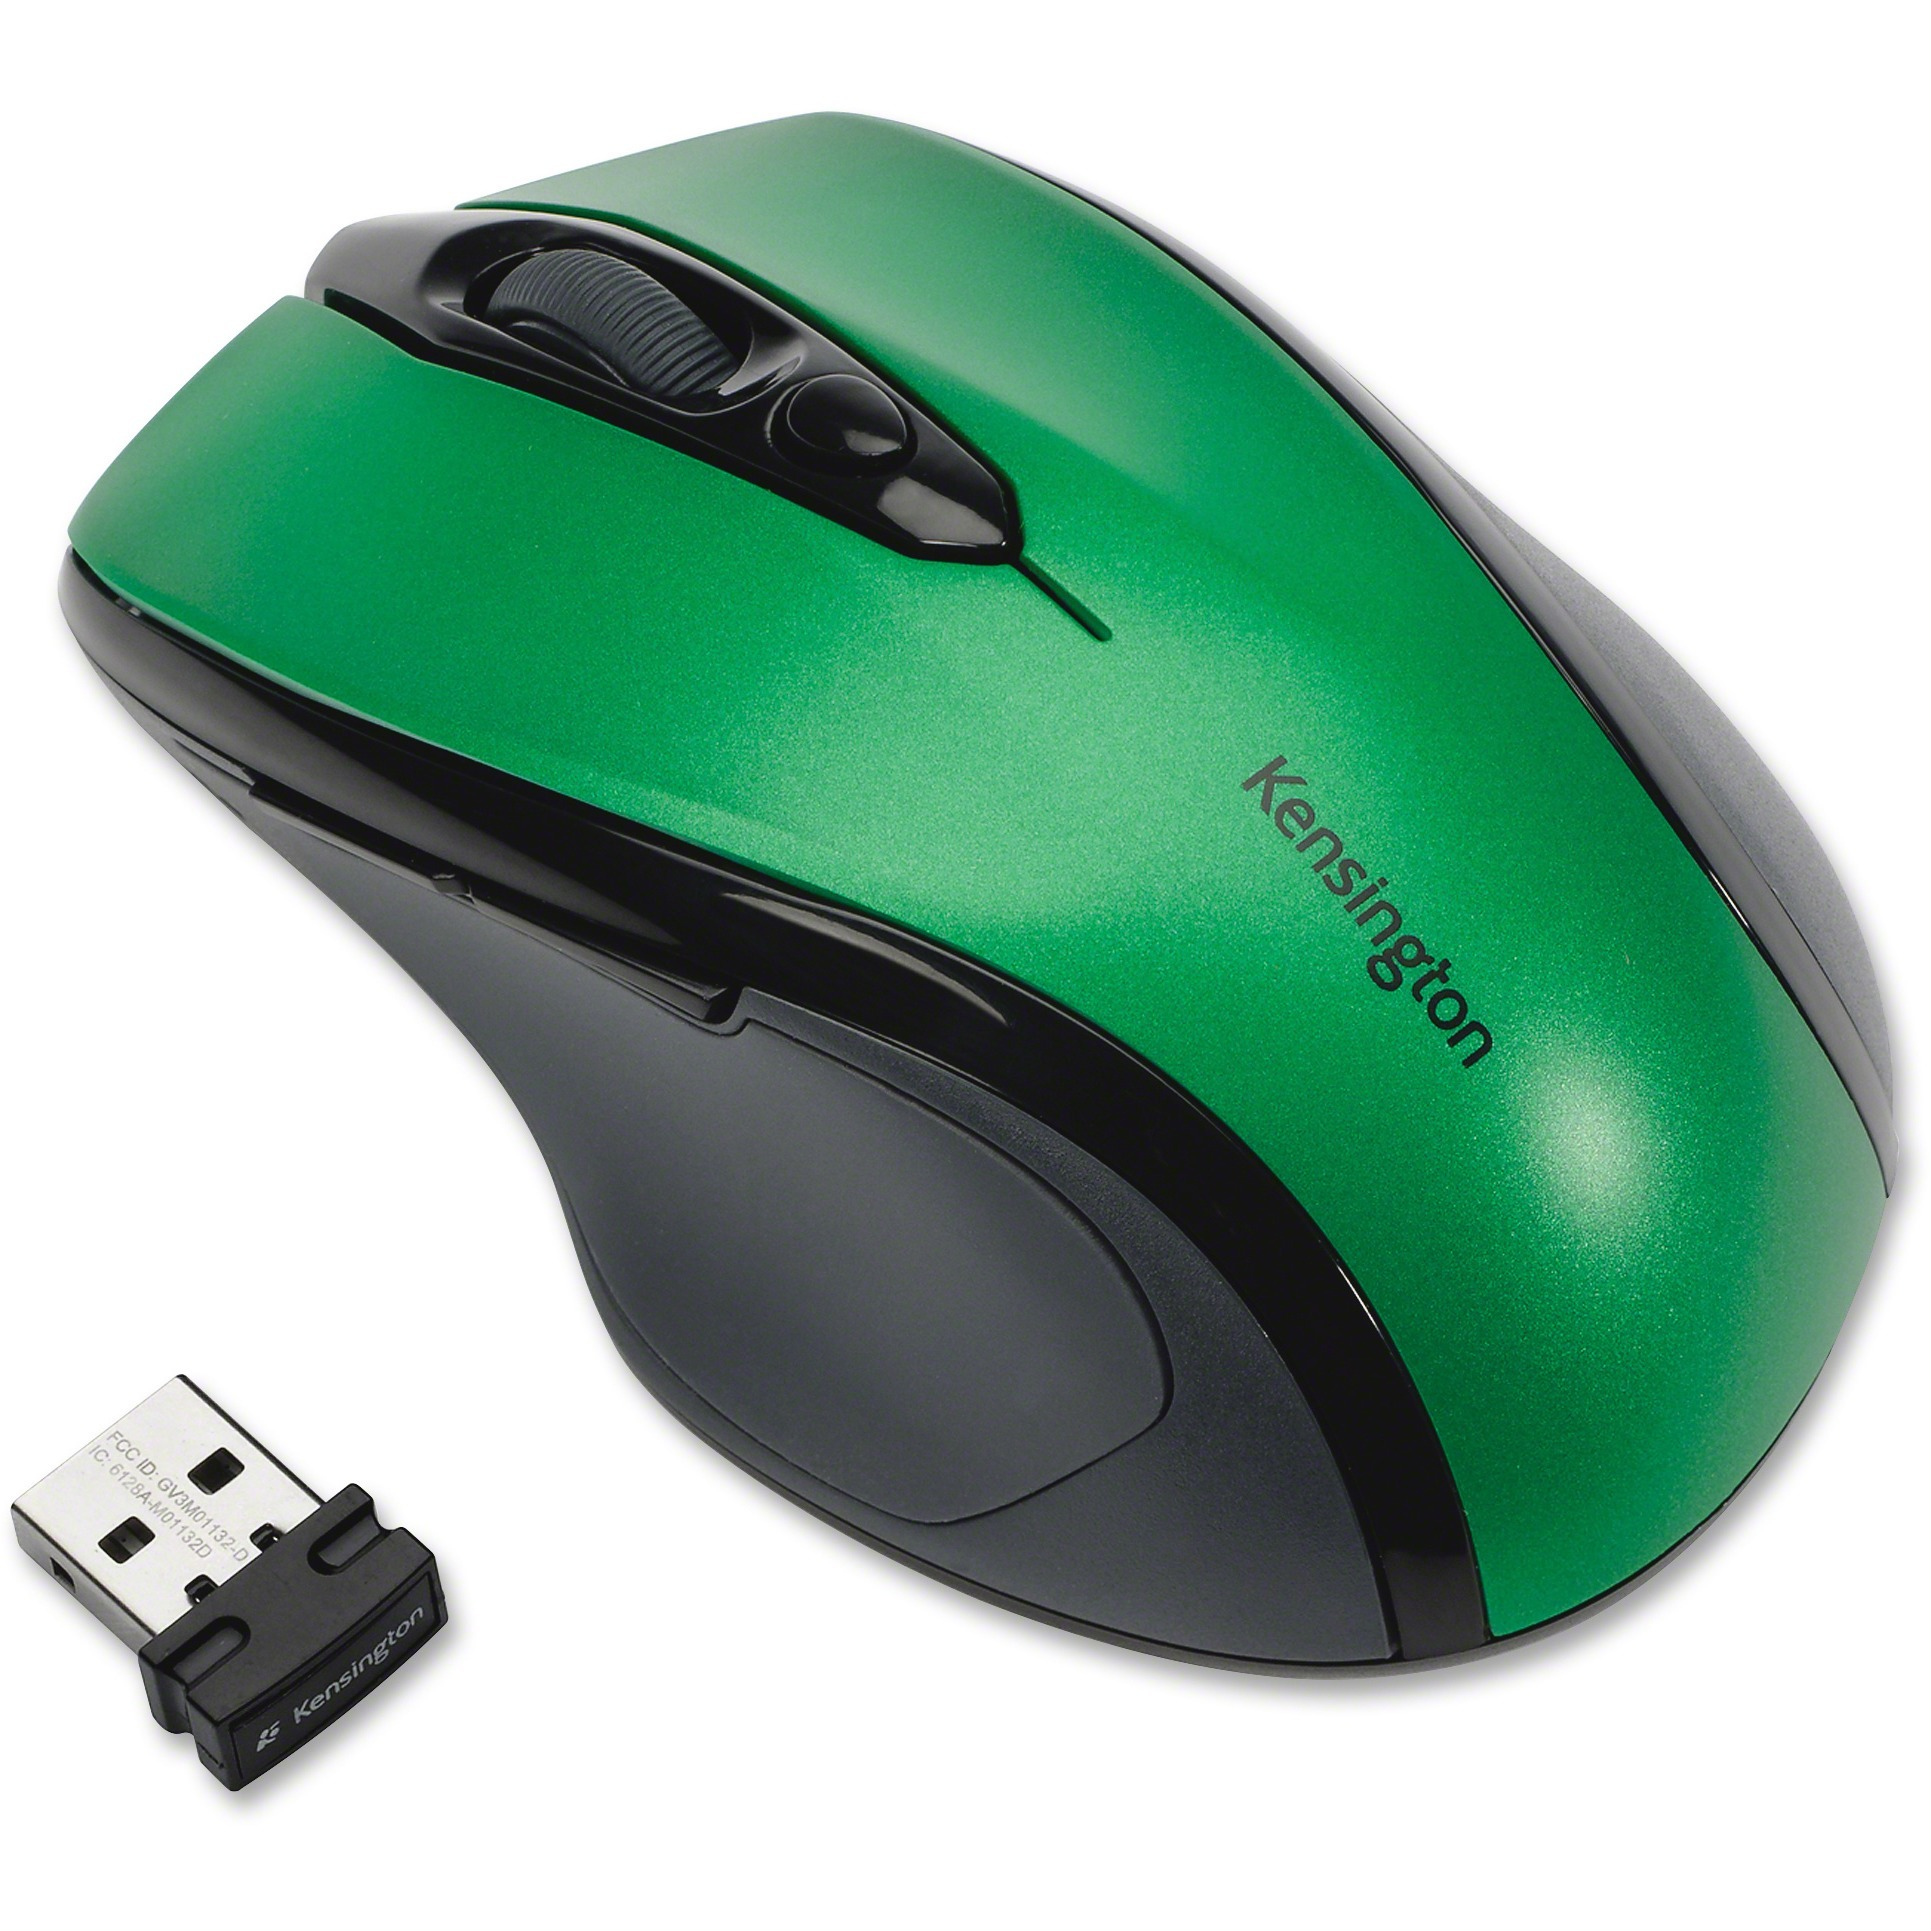 Kensington, KMW72424, Pro Fit Mid-size Wireless Mouse, 1, Emerald Green